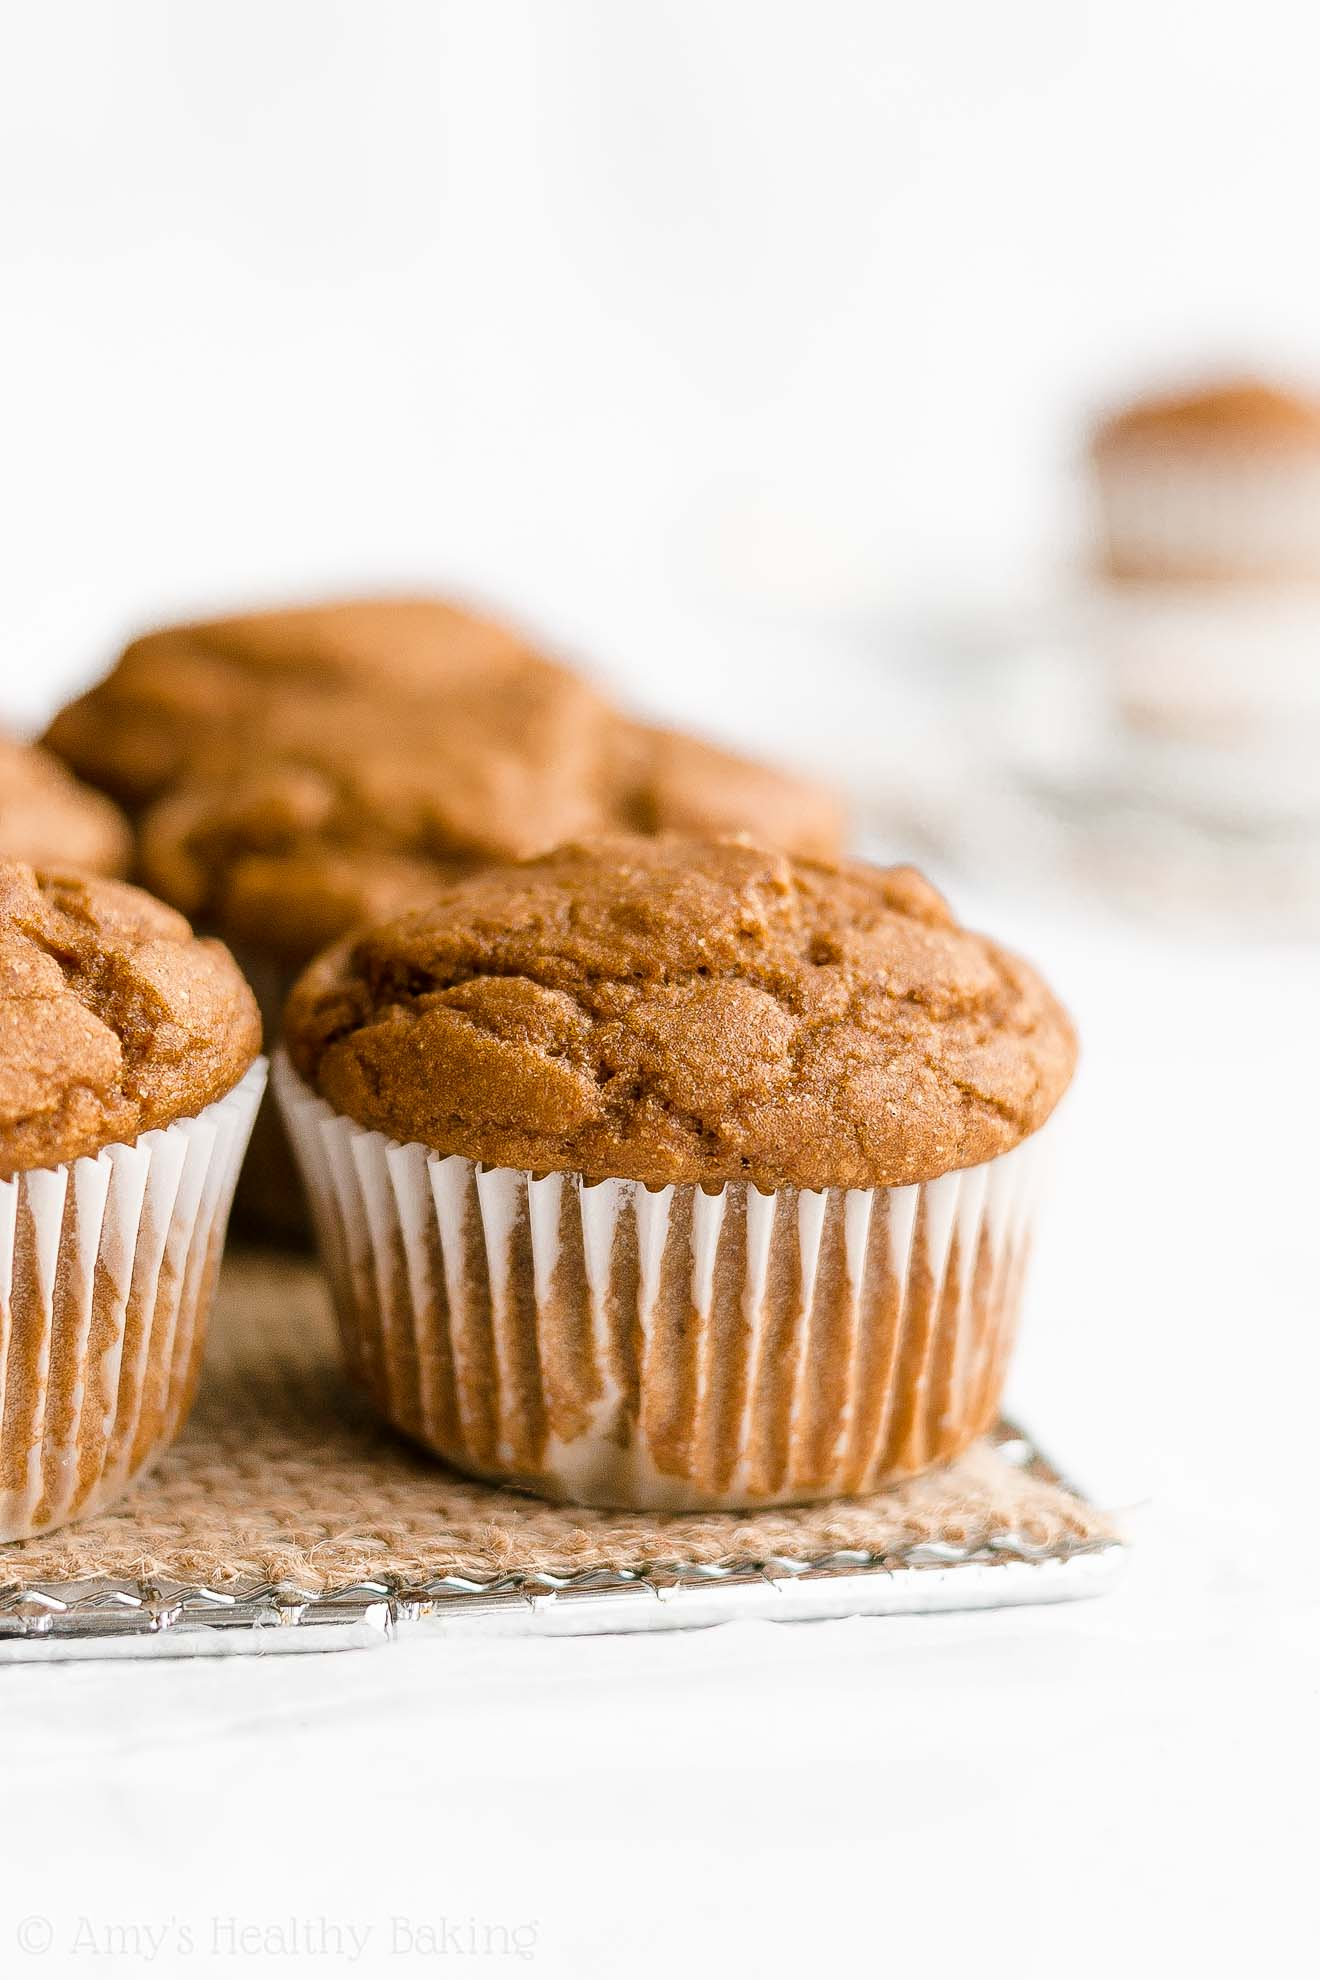 Easy Healthy Low Calorie Gluten Free One-Bowl Gingerbread Muffins